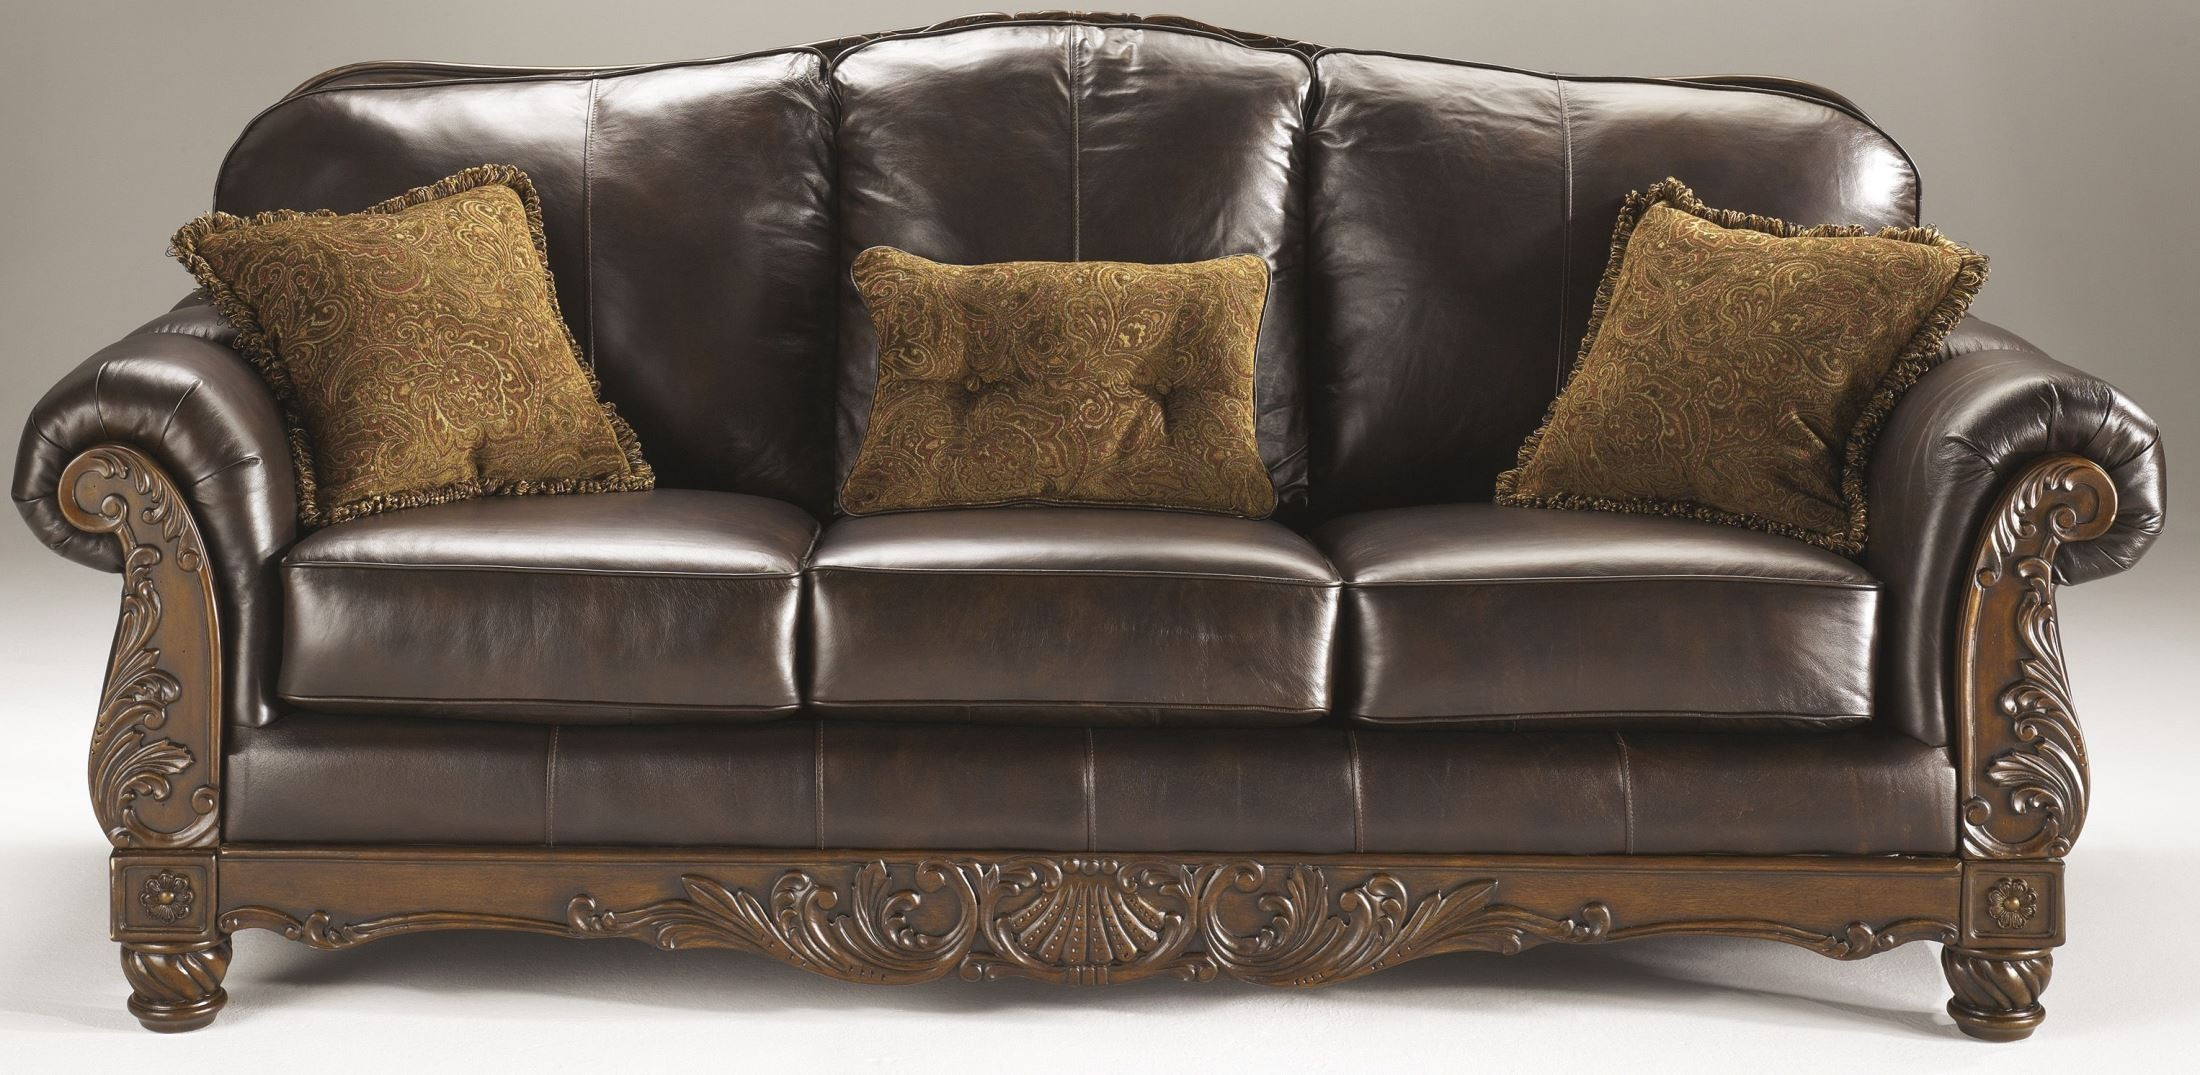 North Shore Dark Brown Living Room Set from Ashley